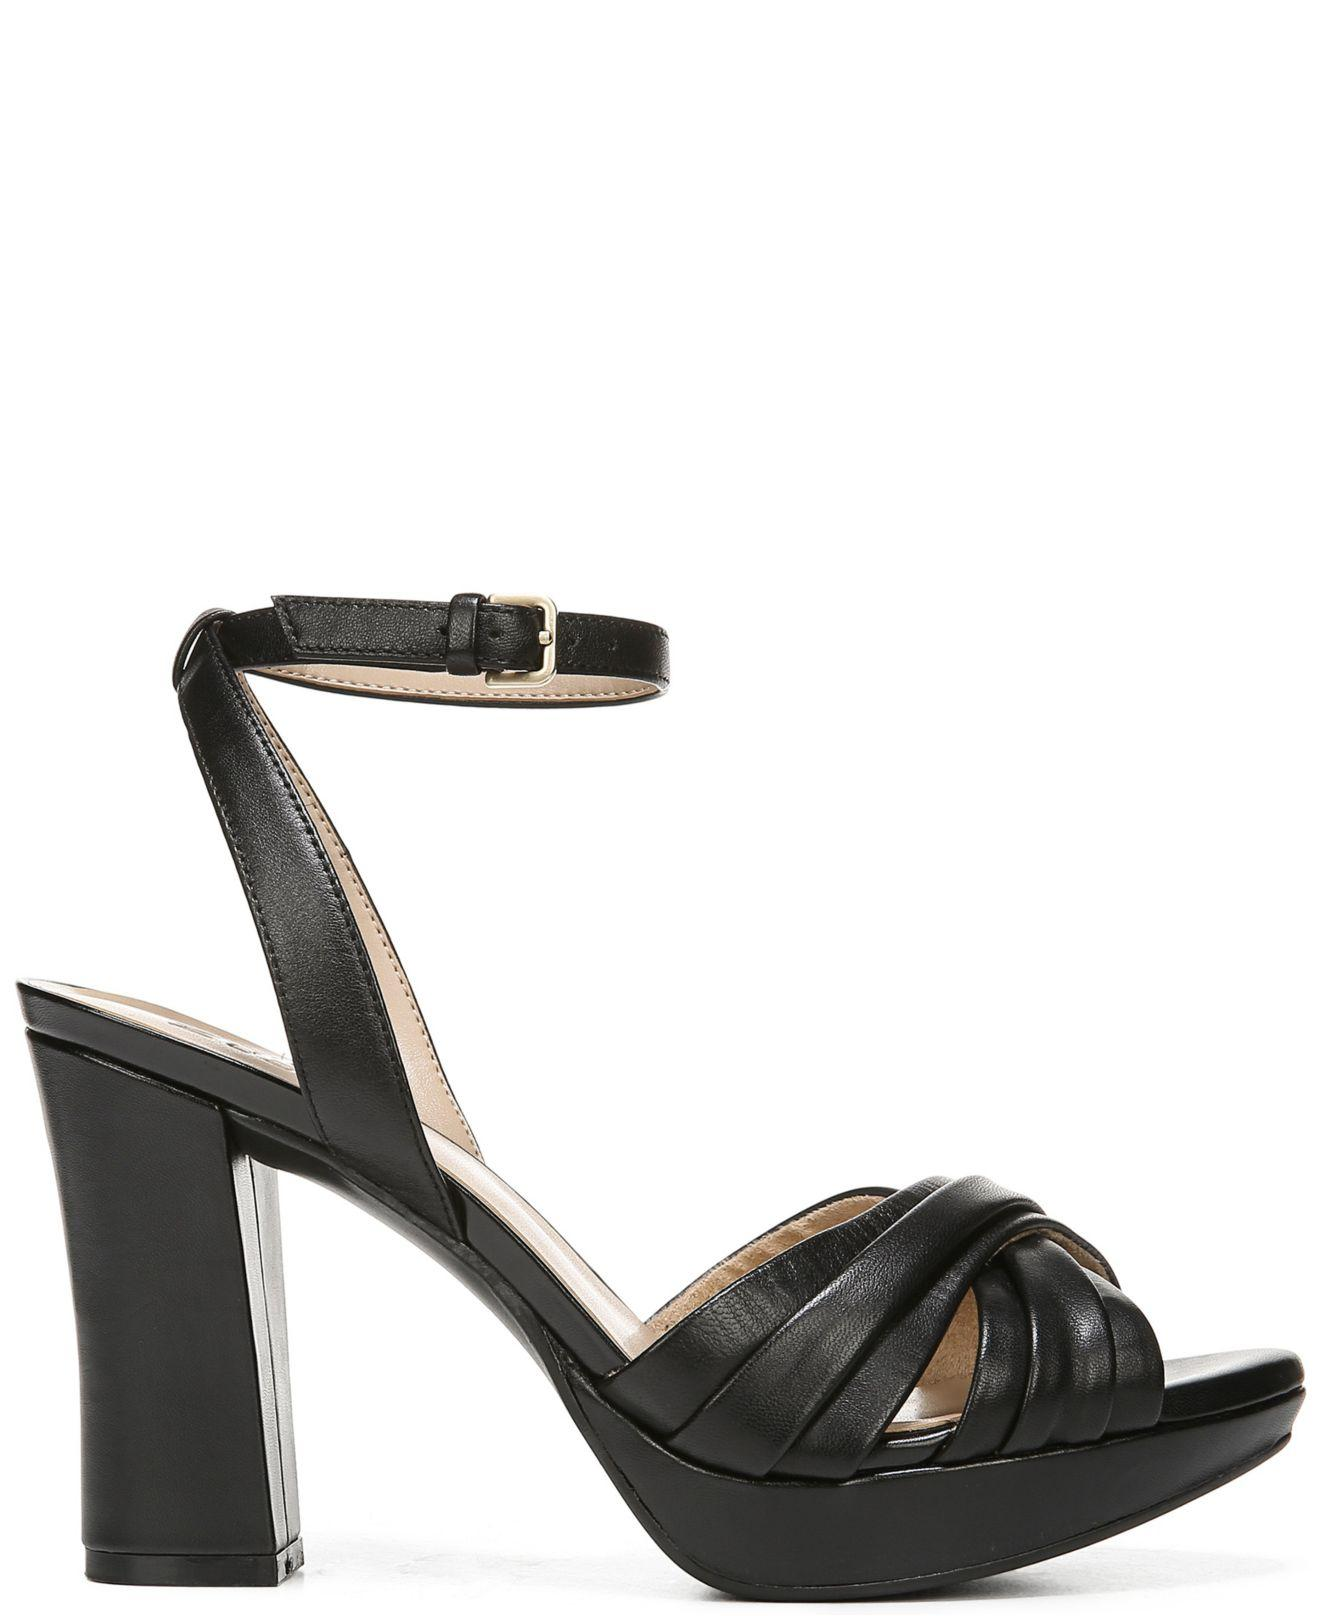 4f1b411e819a Lyst - Naturalizer Avril Ankle Strap Sandals in Black